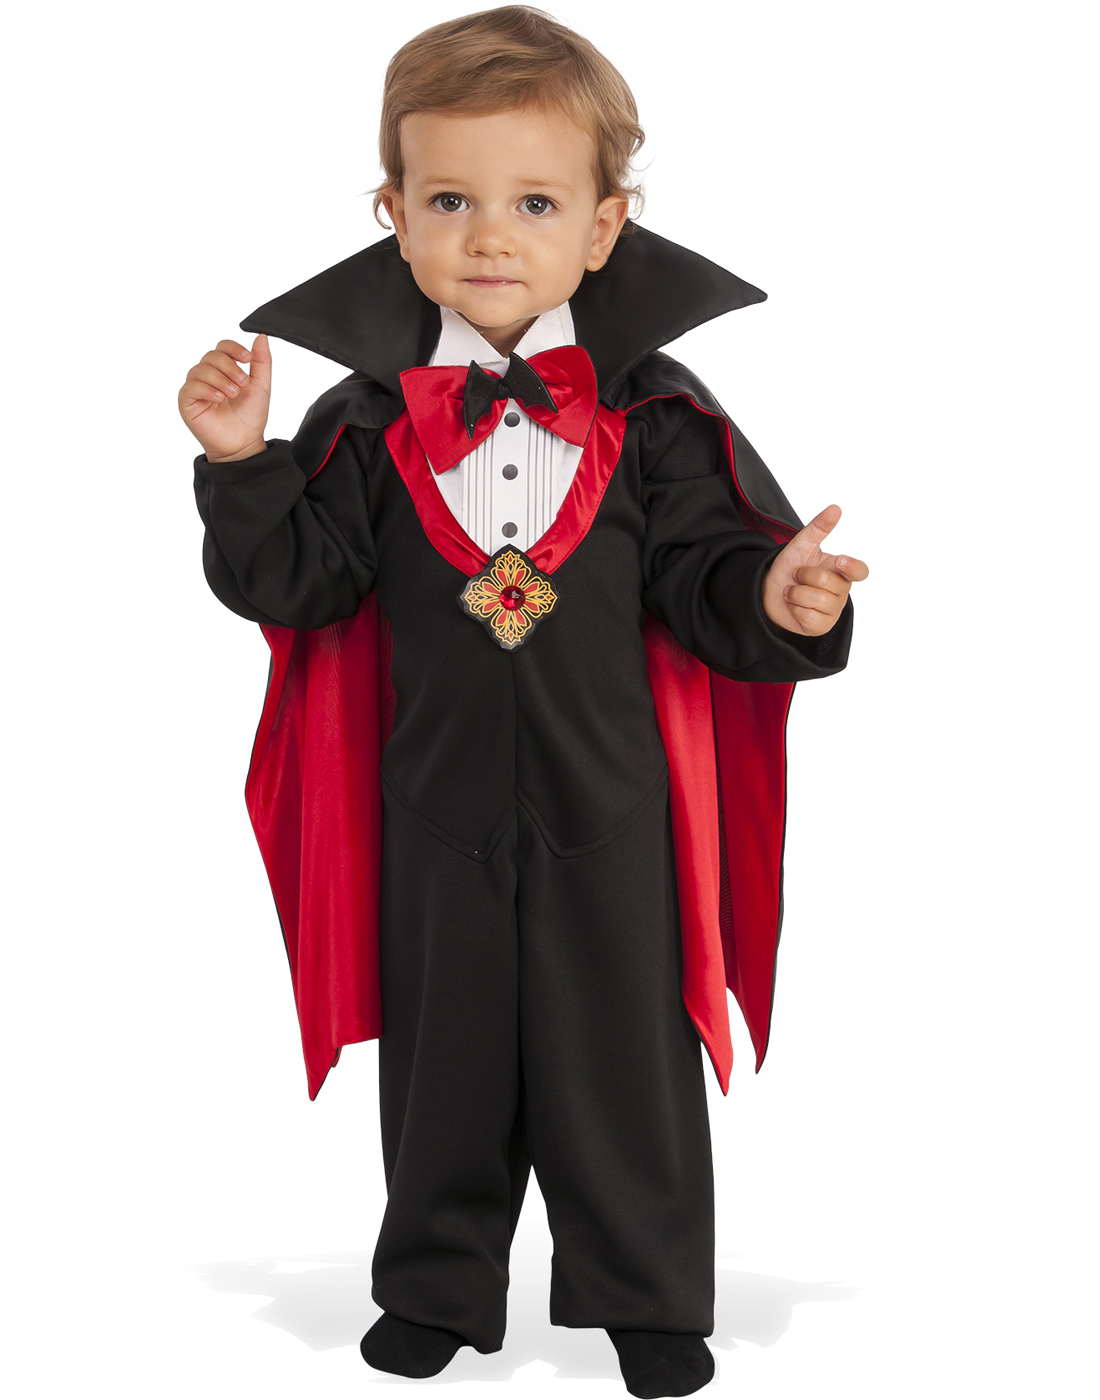 Dapper Count Dracula Infant Toddler Boys V&ire Halloween Costume  sc 1 st  Walmart & Vampire Costumes